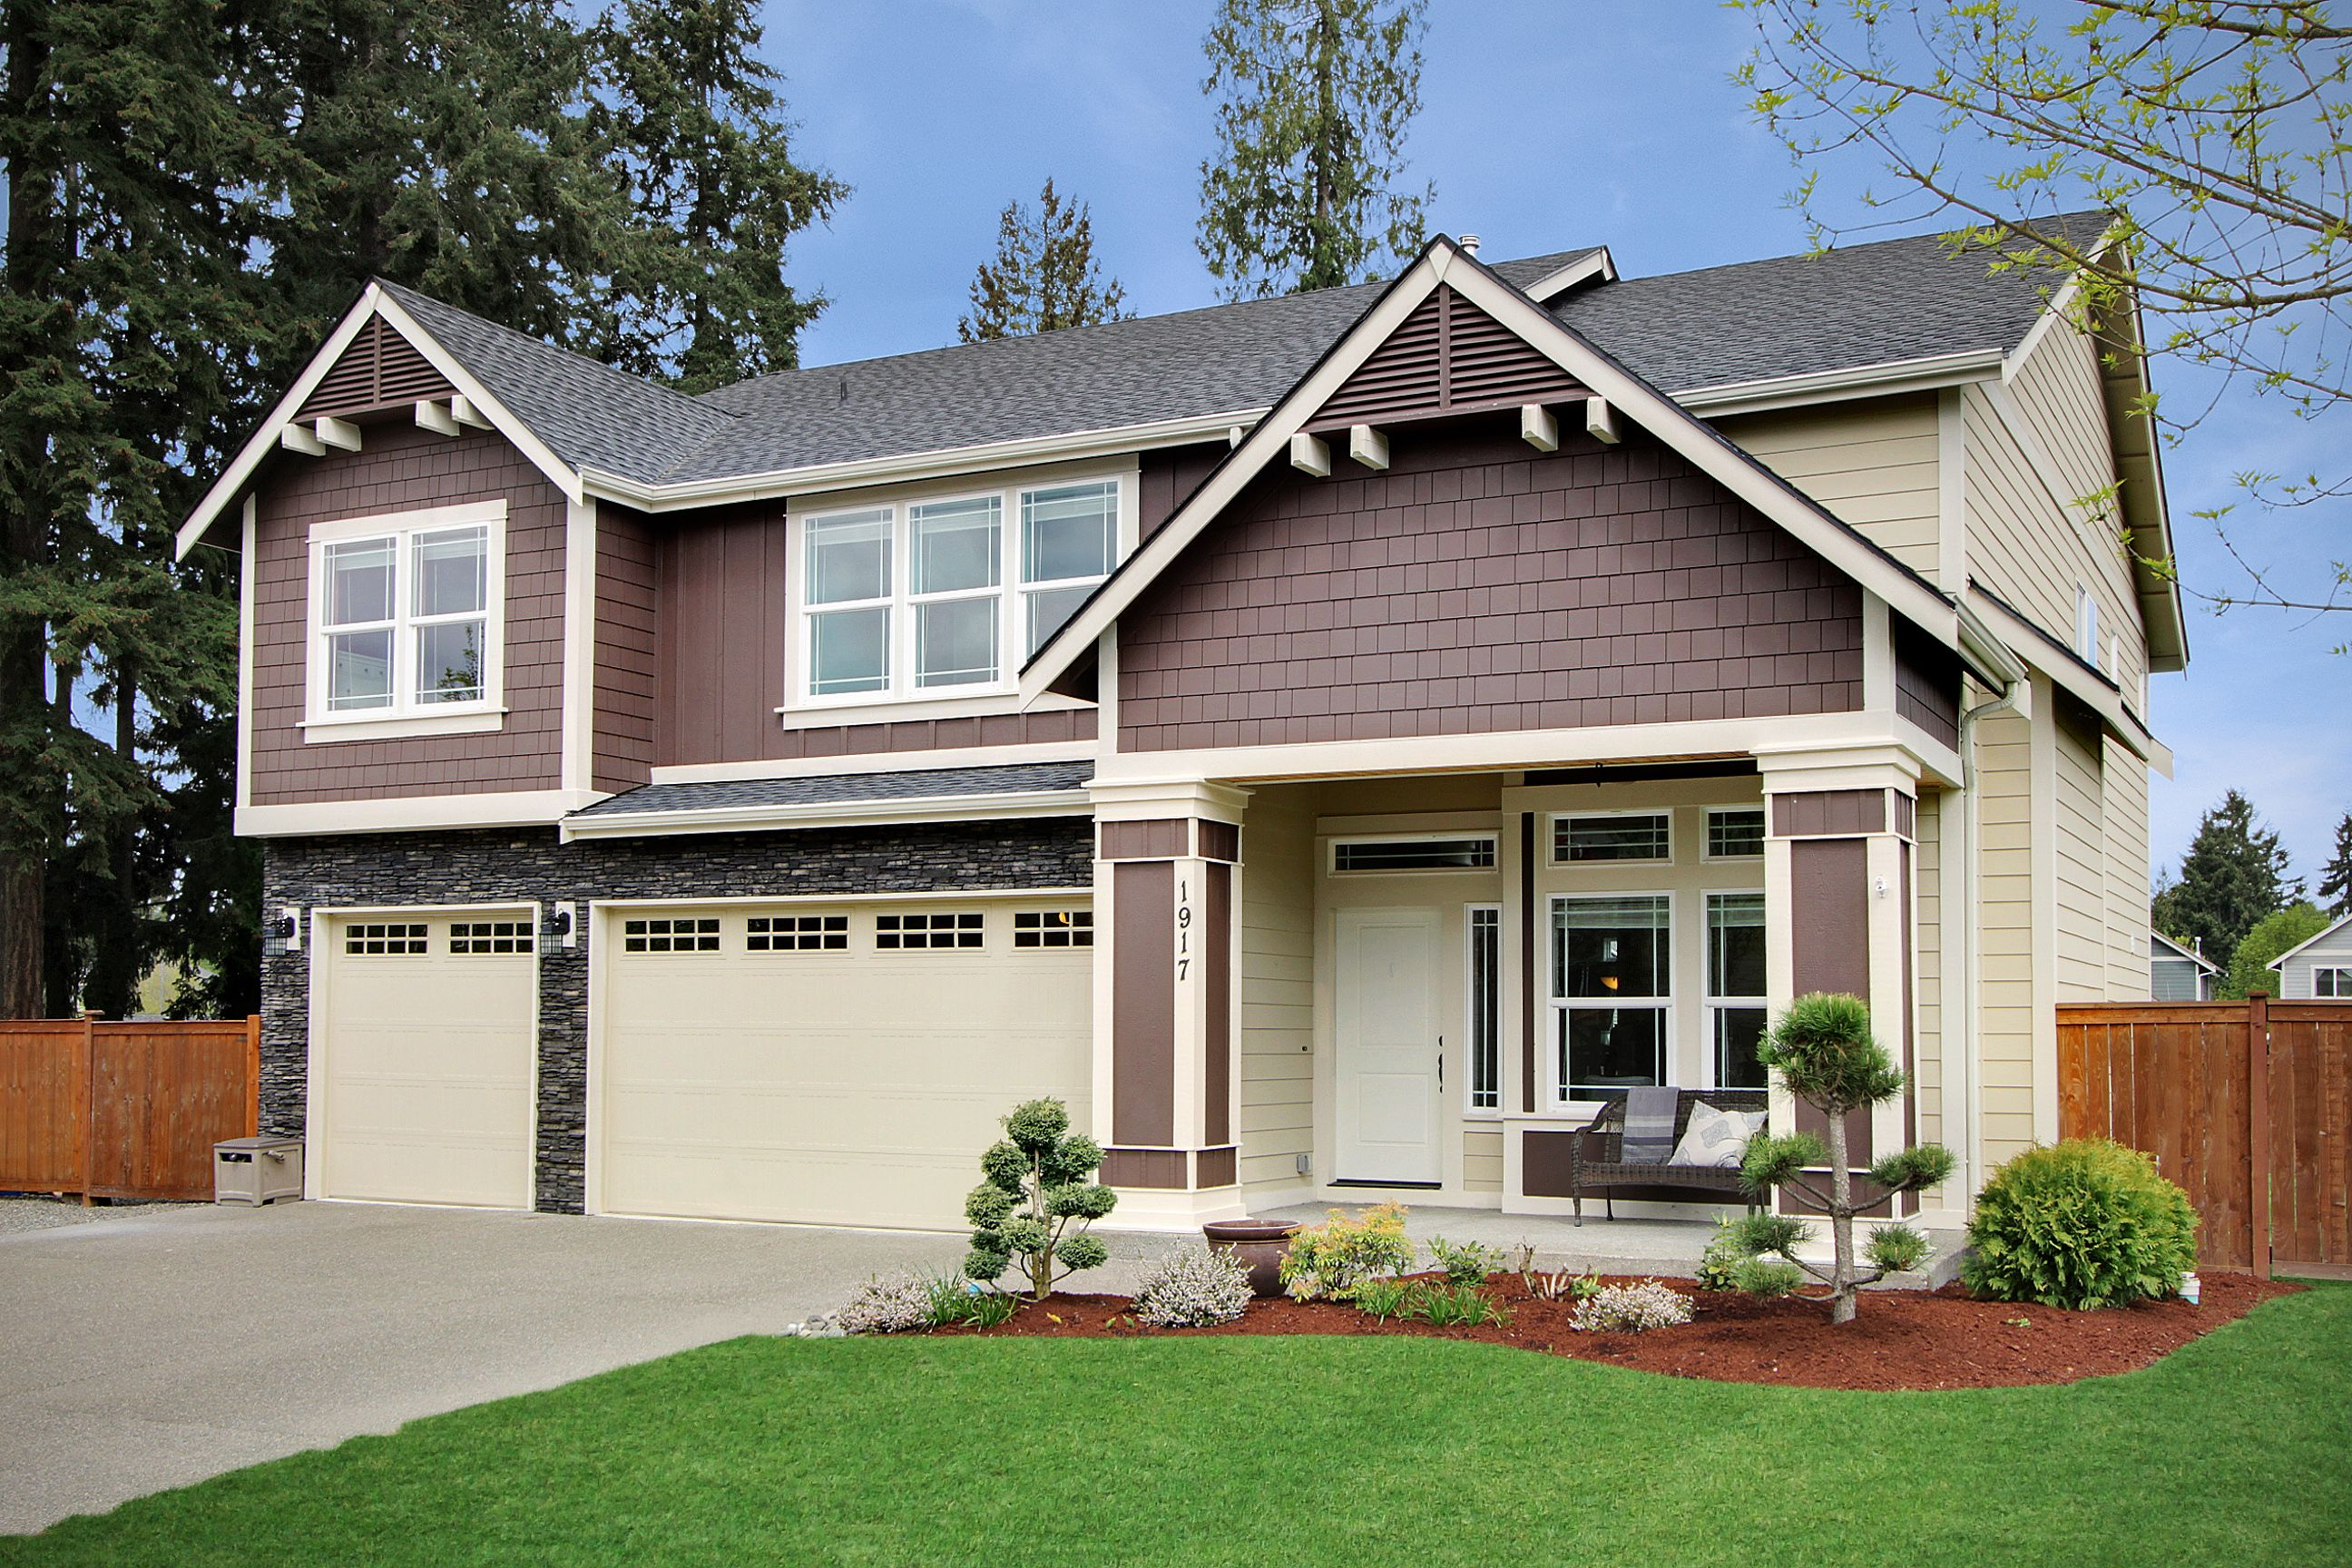 Home exterieur designtrends 2018 custom built homes  custom built homes in   pinterest  custom